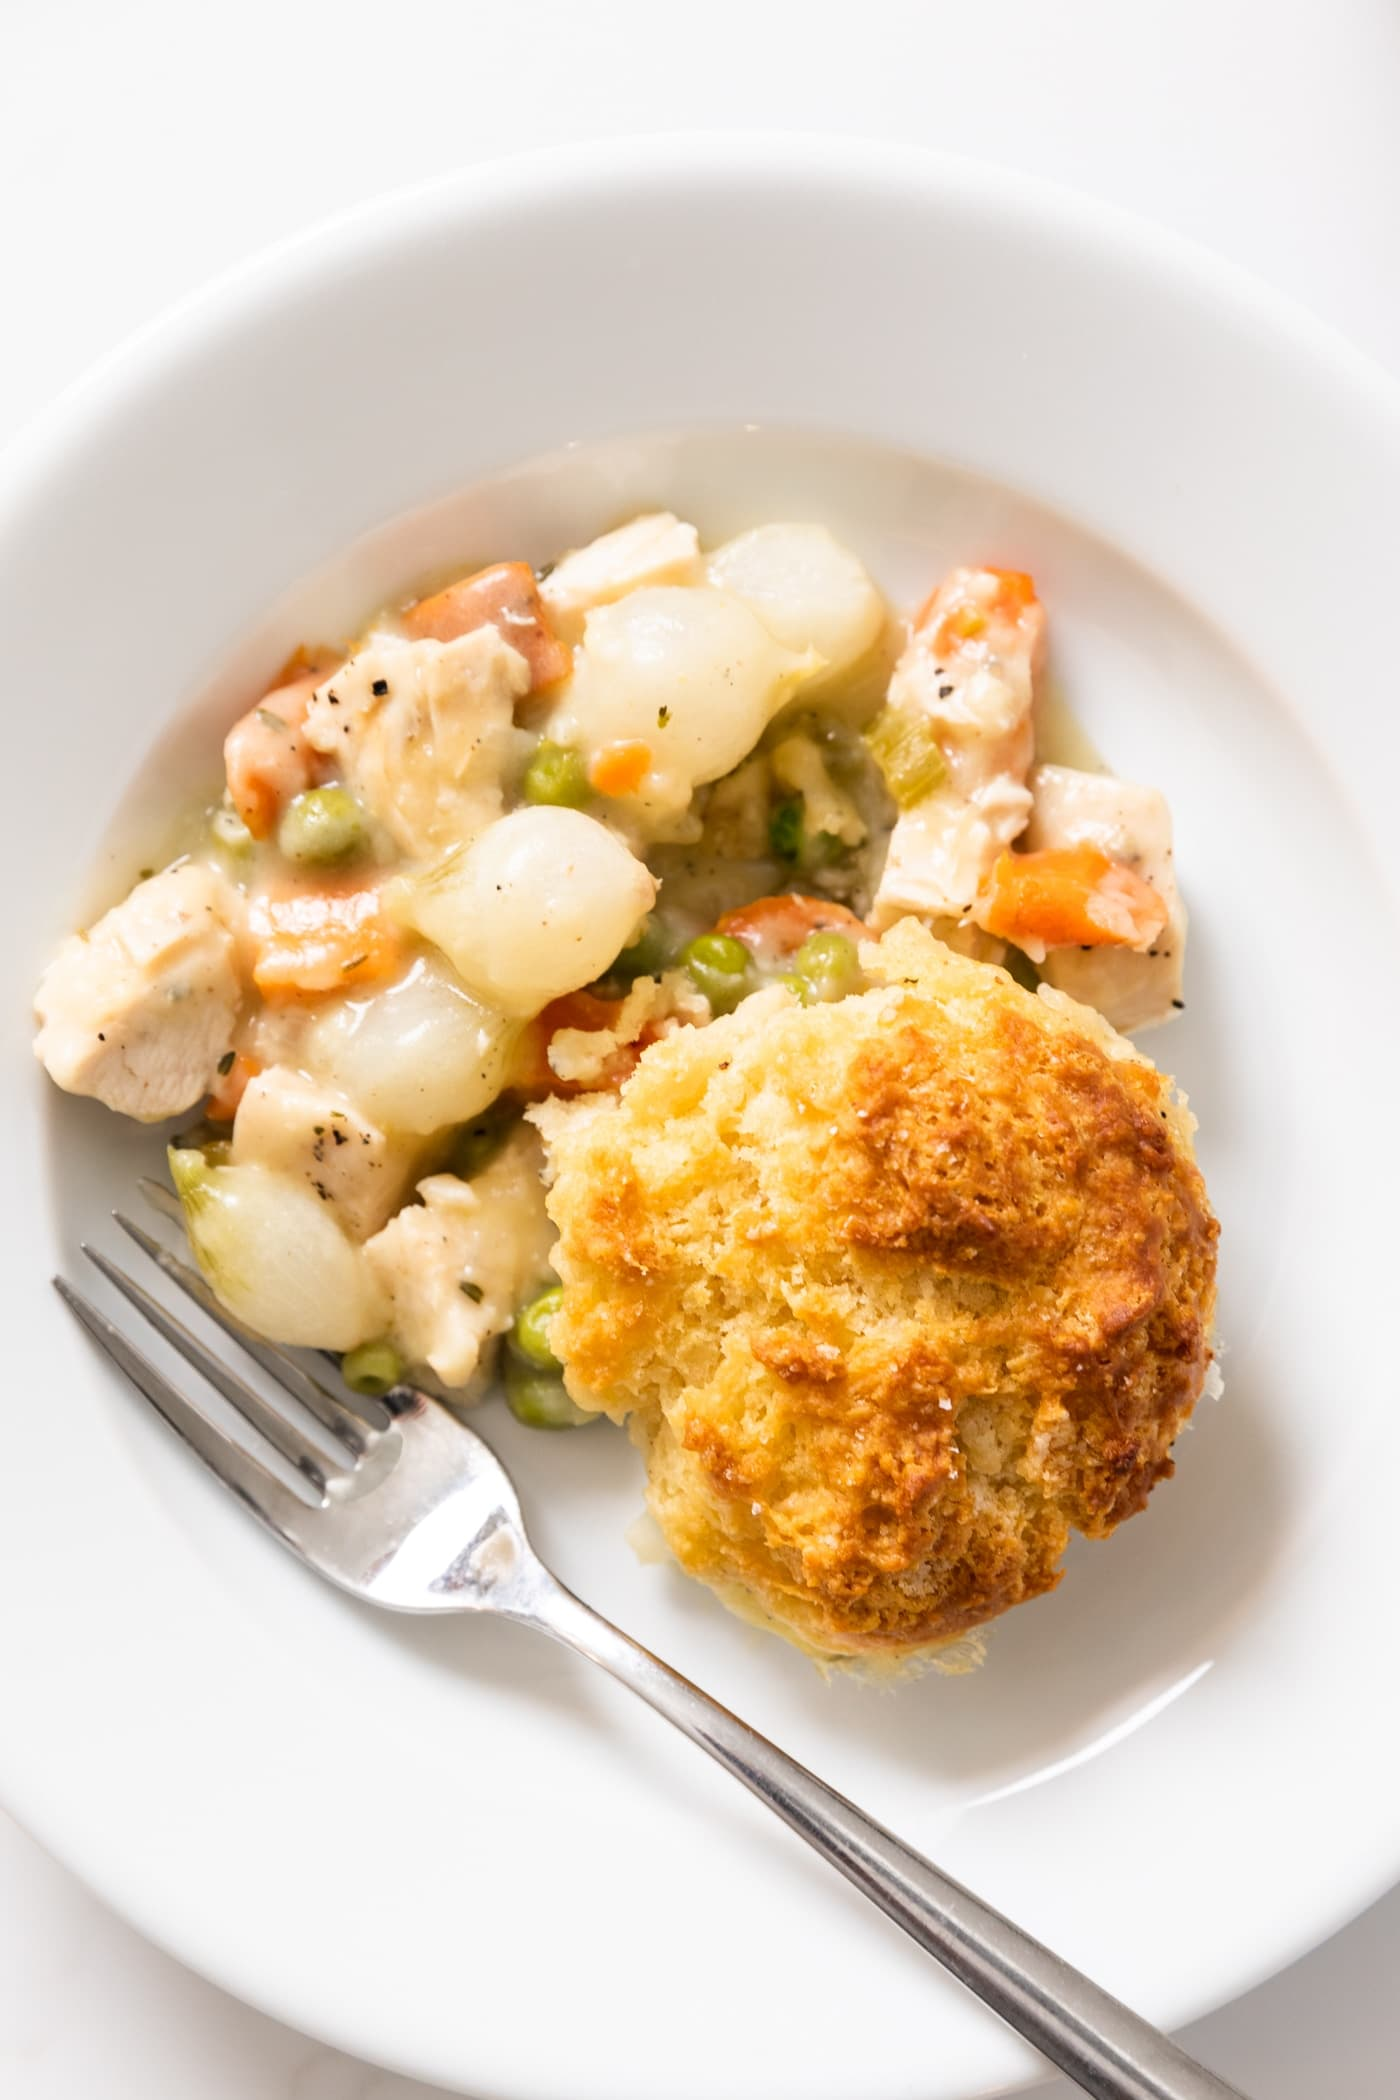 Top down view of white plate holding a thickened sauce with vegetables sitting in mixture topped with a biscuit